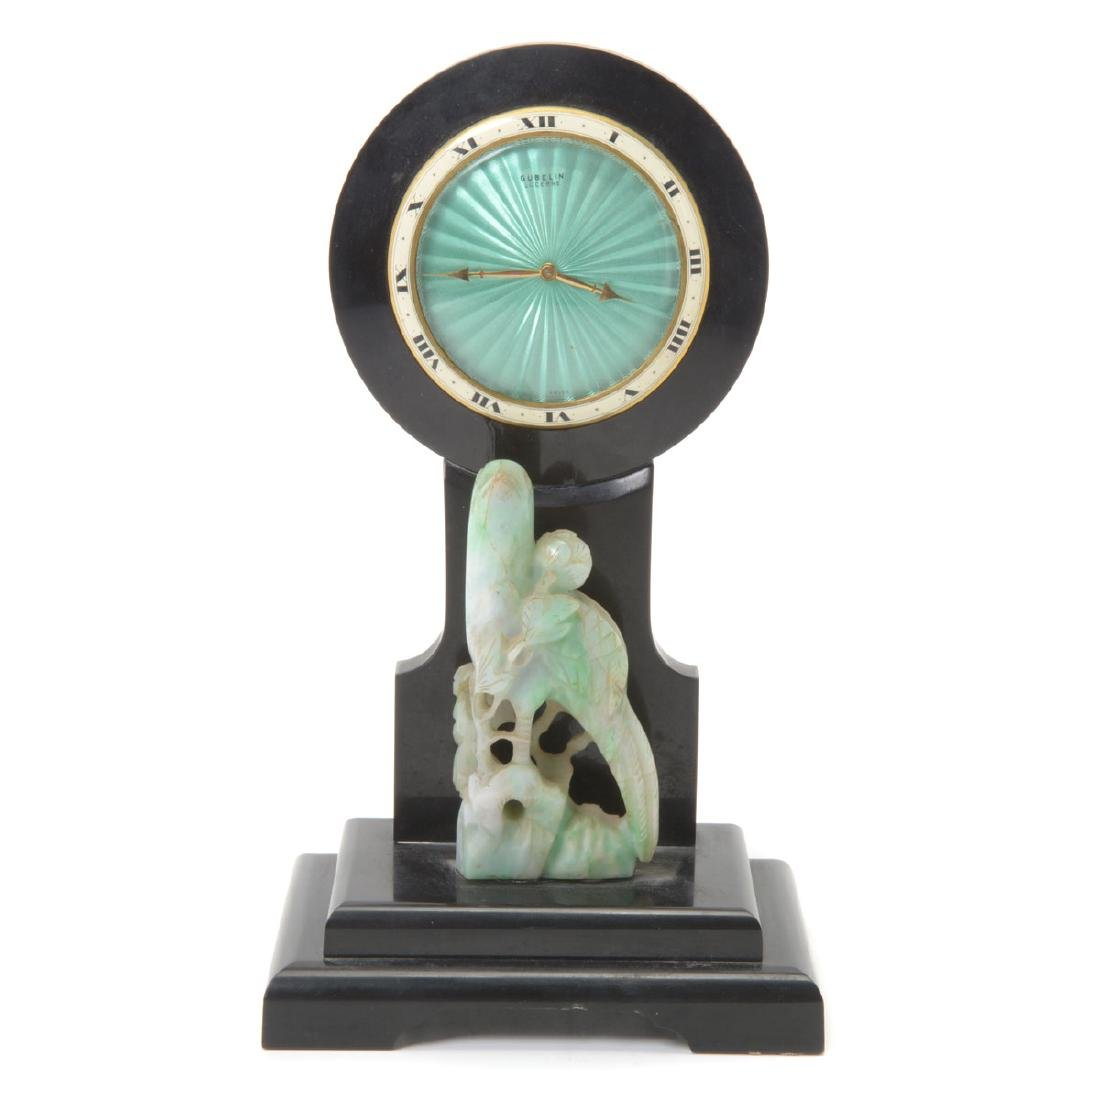 Art Deco Gubelin Mantle Clock in the Chinese Style